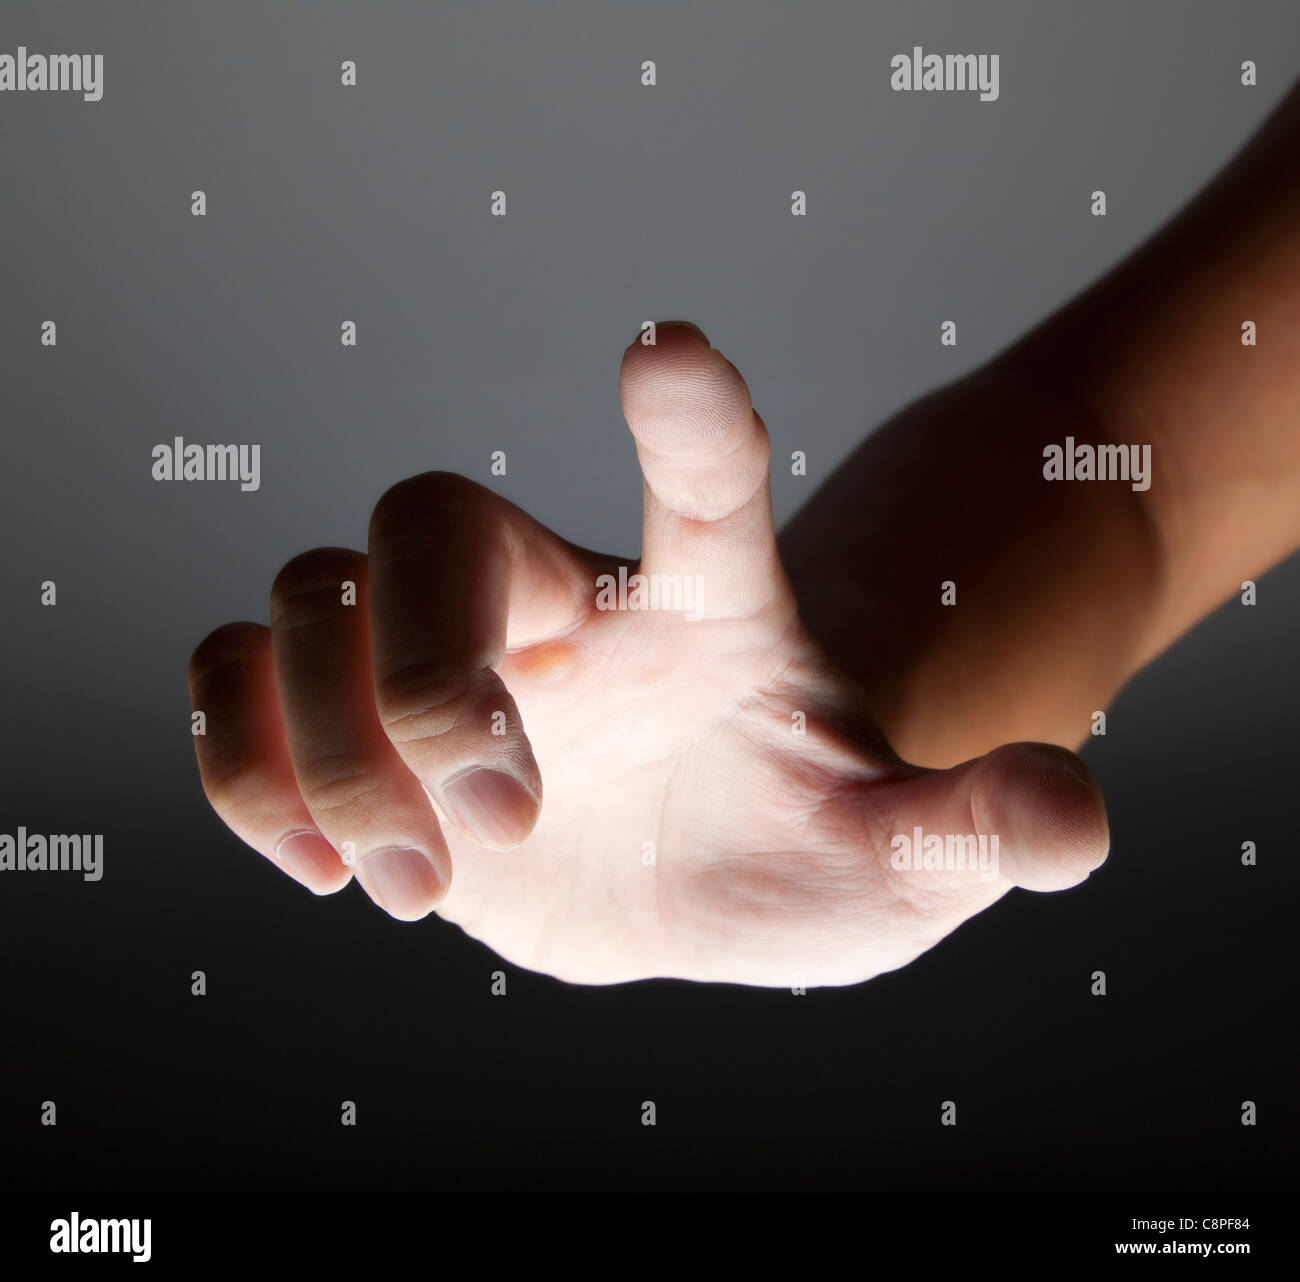 hand touching in the dark - Stock Image